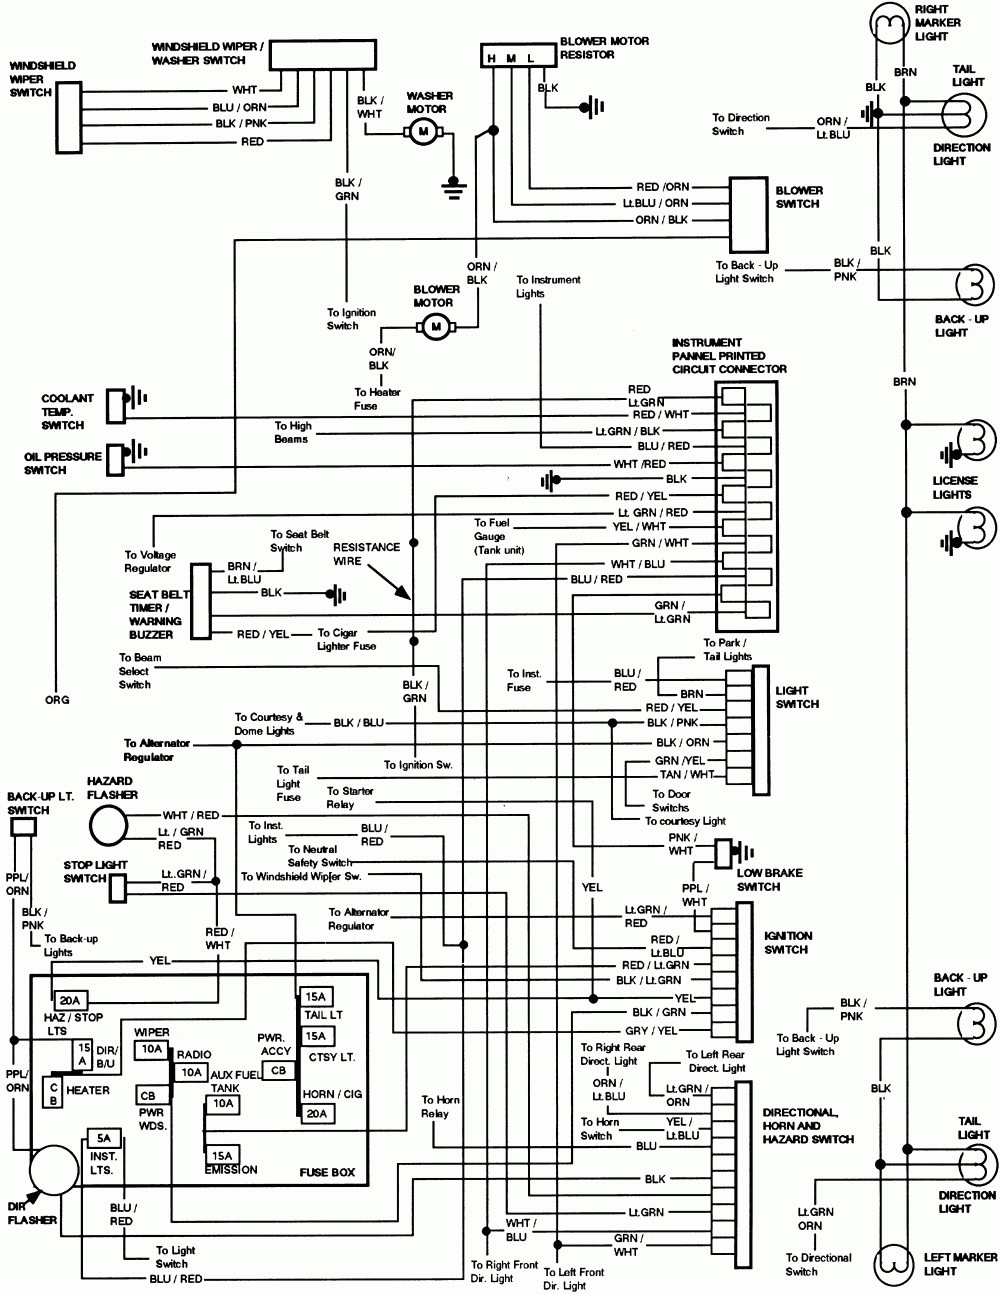 Radio Schematic Wiring Diagram Wire Data Schema 1968 Ford Electrical Diagrams Rh Cytrus Co Basic Schematics Simple